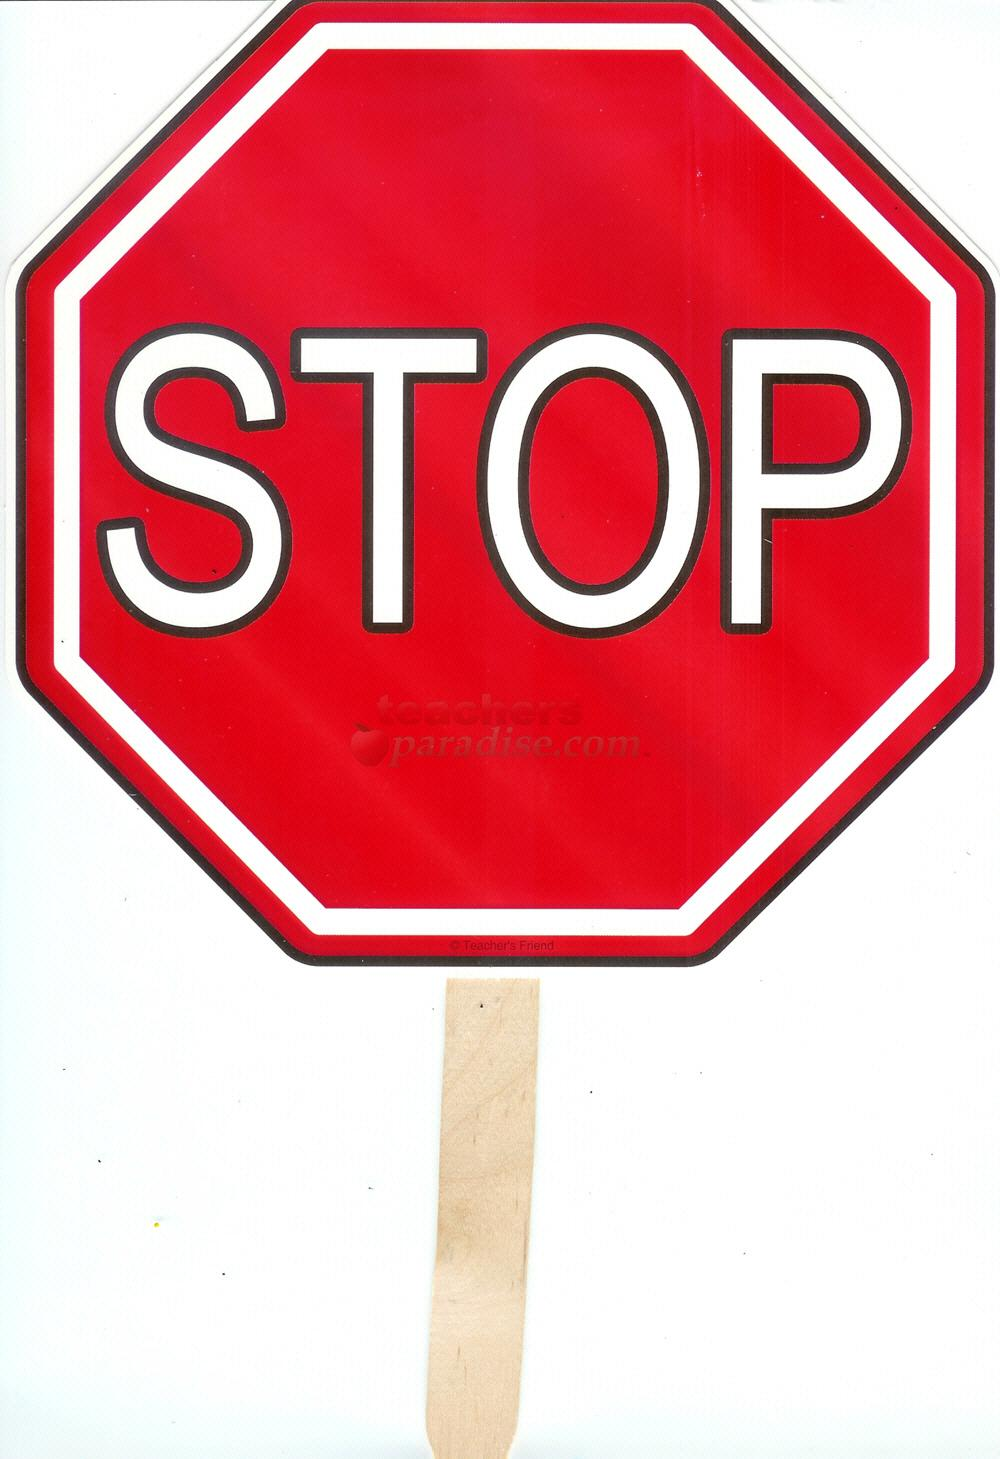 Black And White Stop Sign Clipart Stop S-Black And White Stop Sign Clipart Stop Sign Clipart 193 Jpg-6